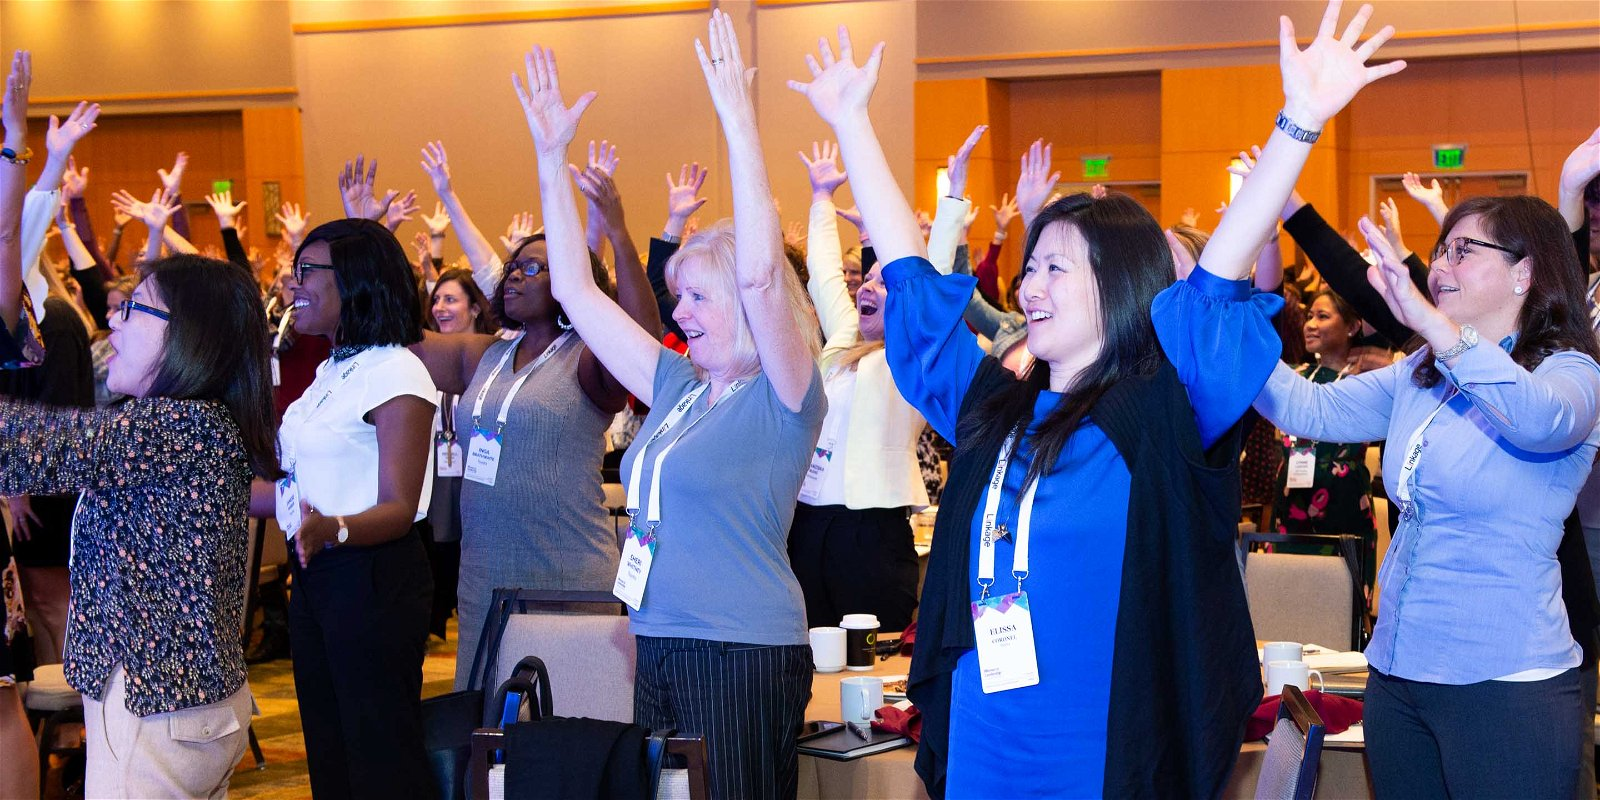 Group of women at conference stand with hands up